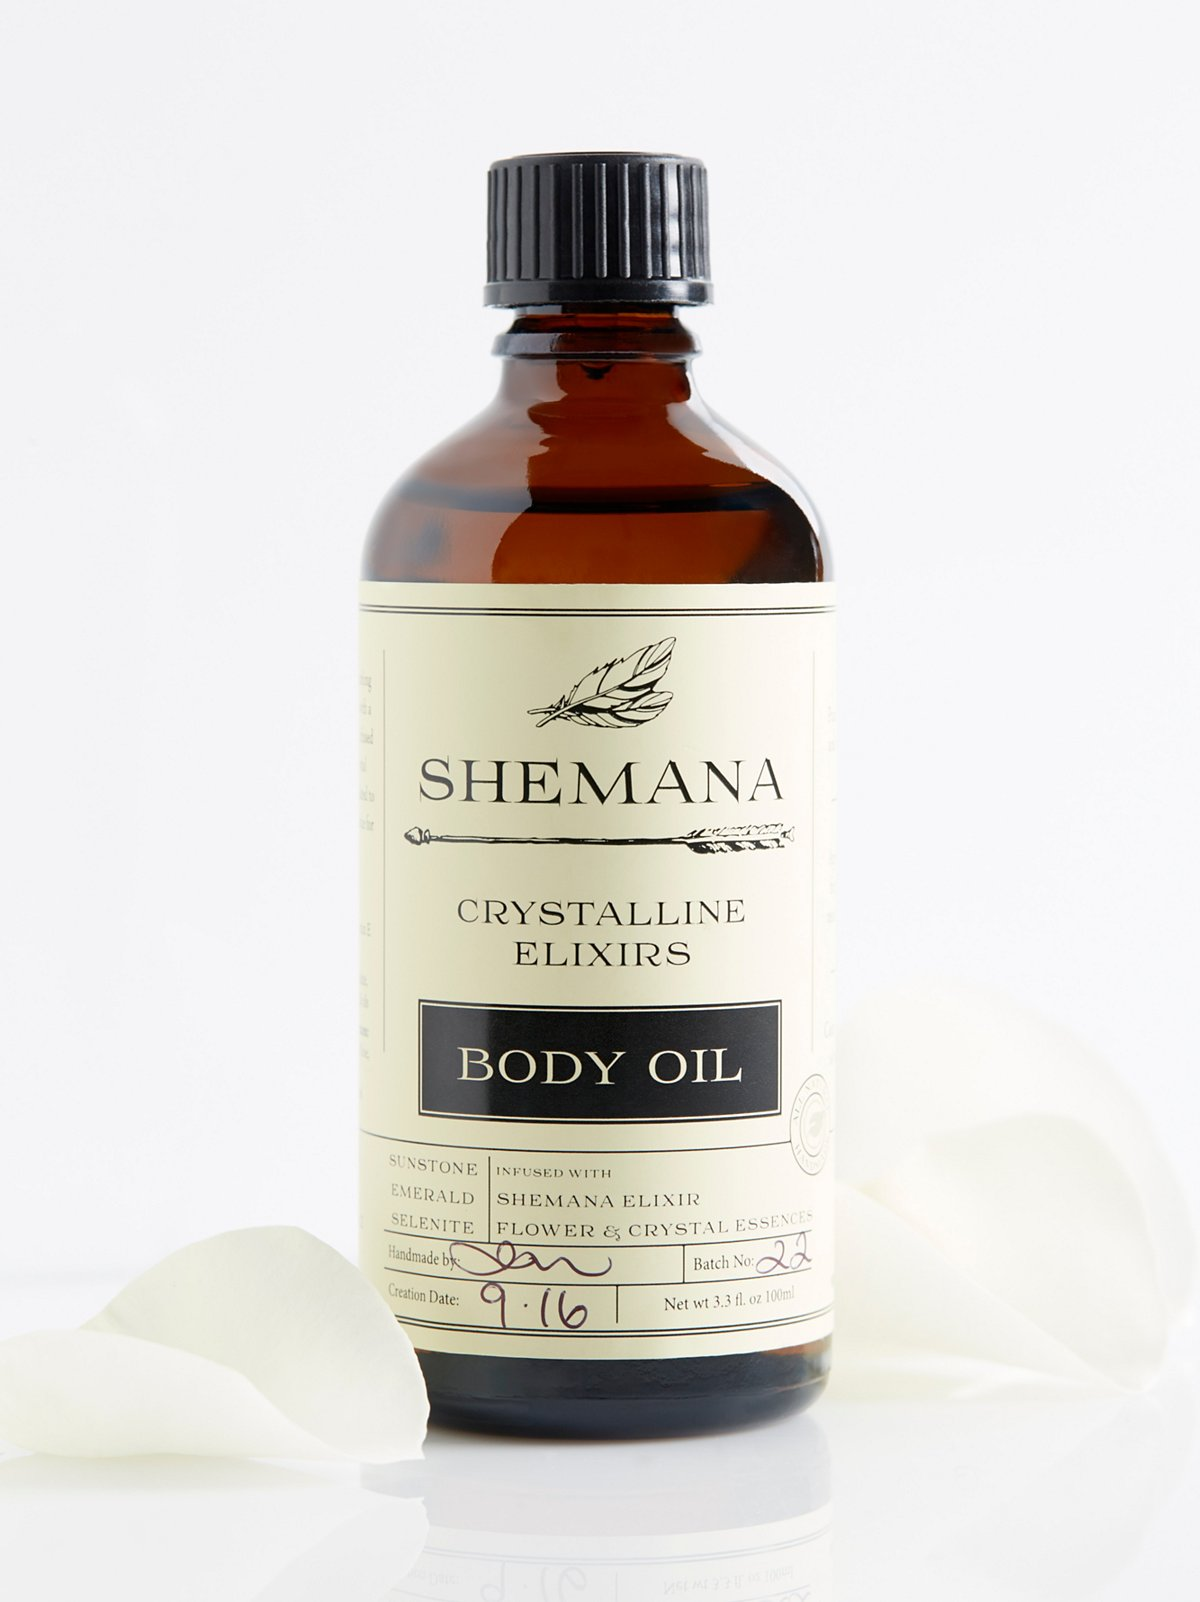 Shemana Body Oil